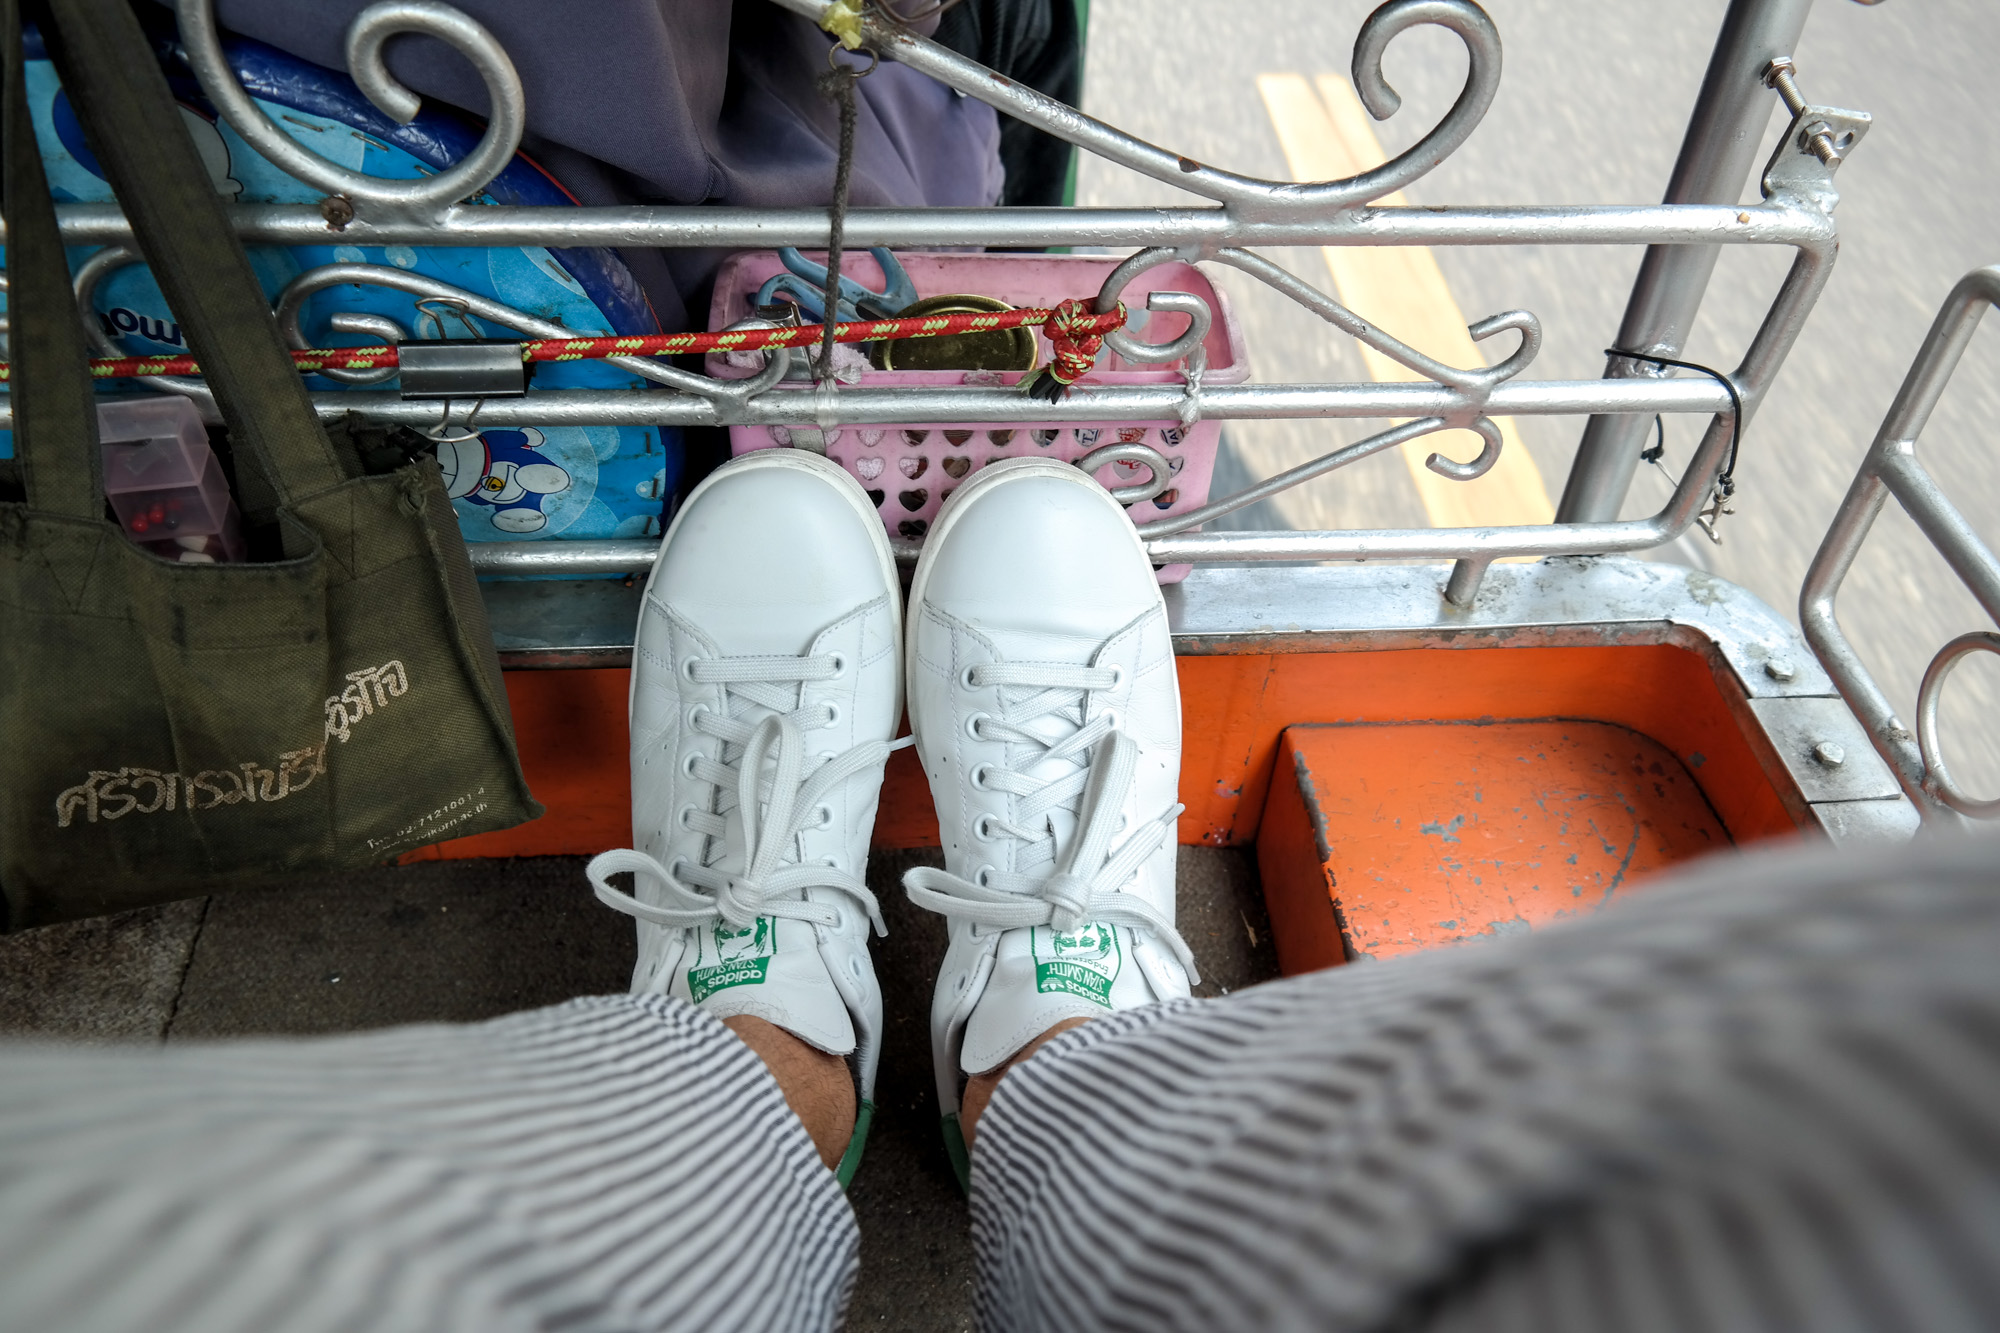 Wearing my new   adidas Stan Smith sneakers   that I got just in time before we left for Thailand.